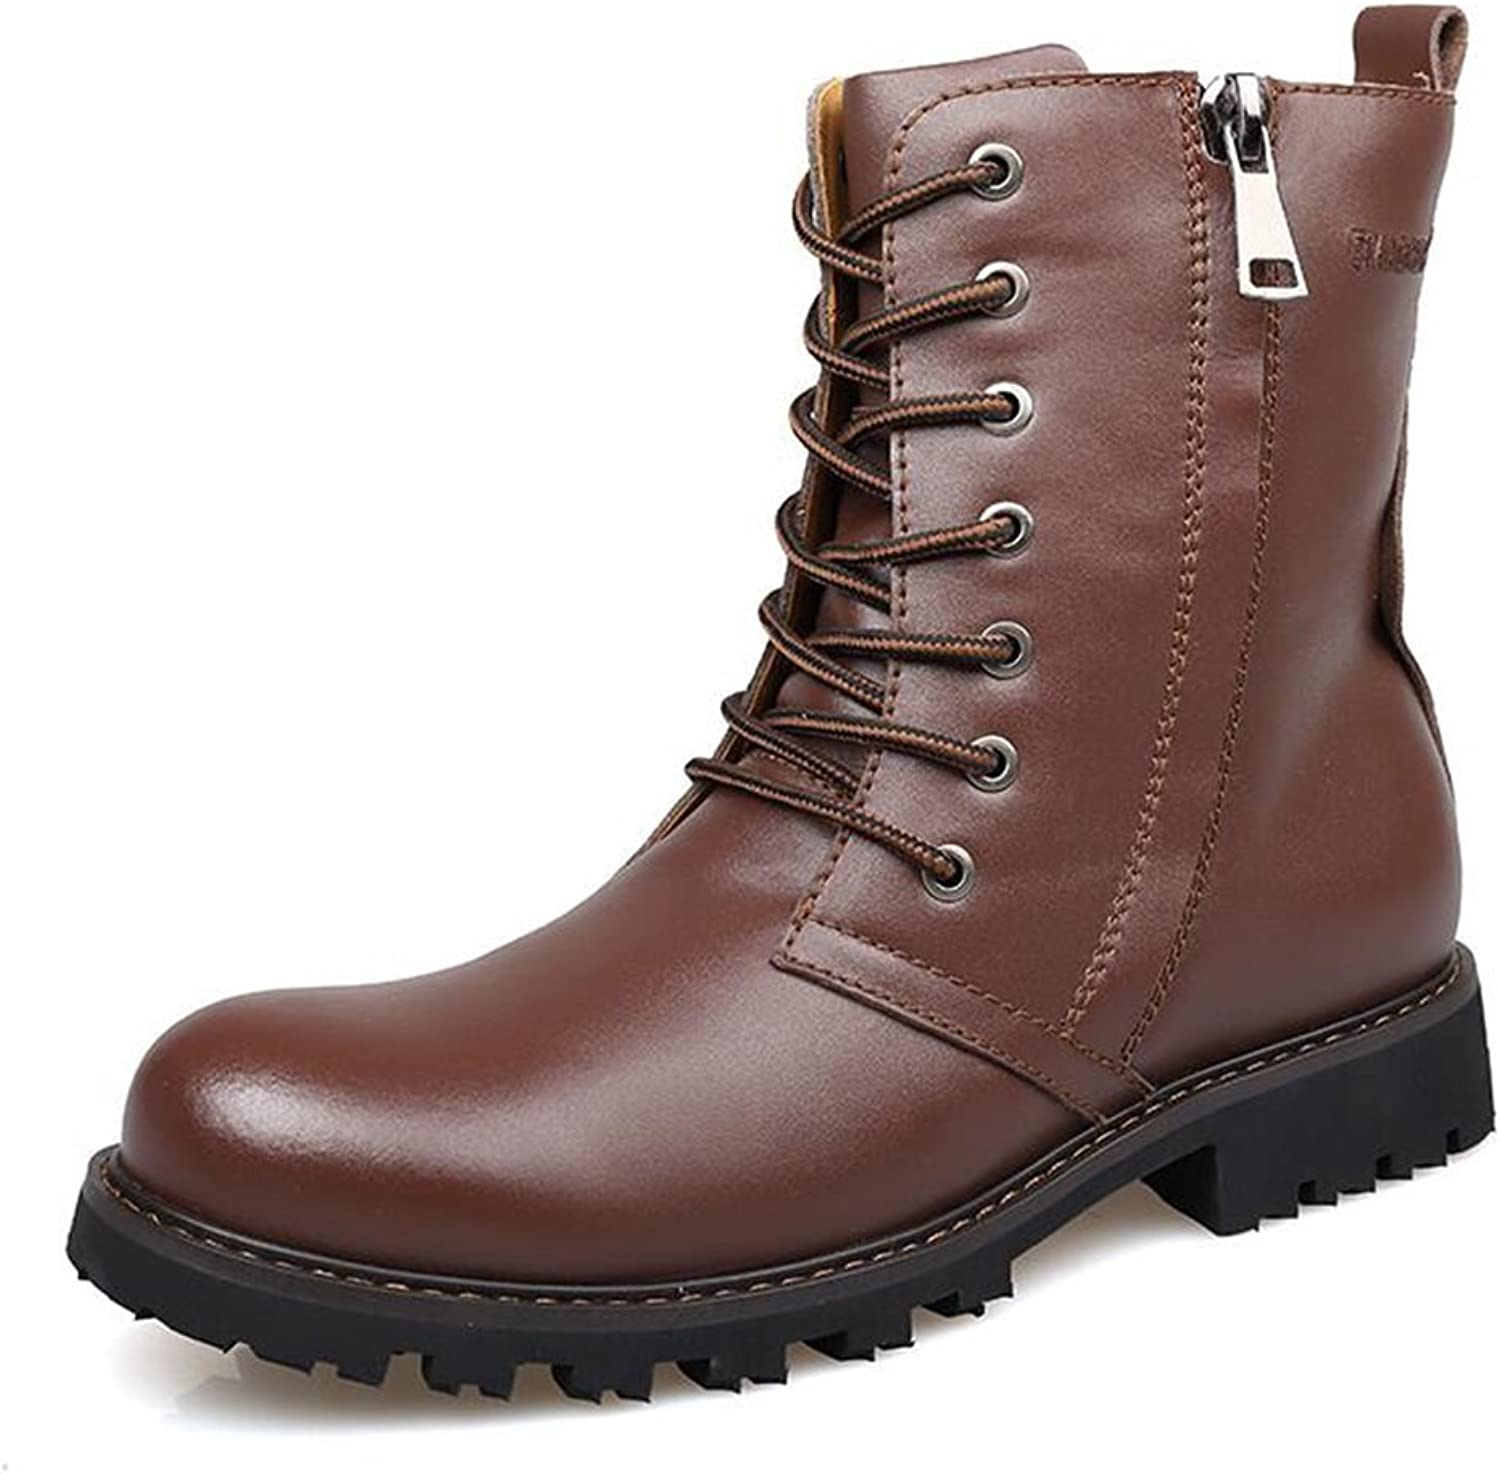 SUN Spring and Autumn Fashion PU Martin Boots Outdoor Casual shoes Tie shoes Dark Brown (Size   EU43 UK9 CN44)